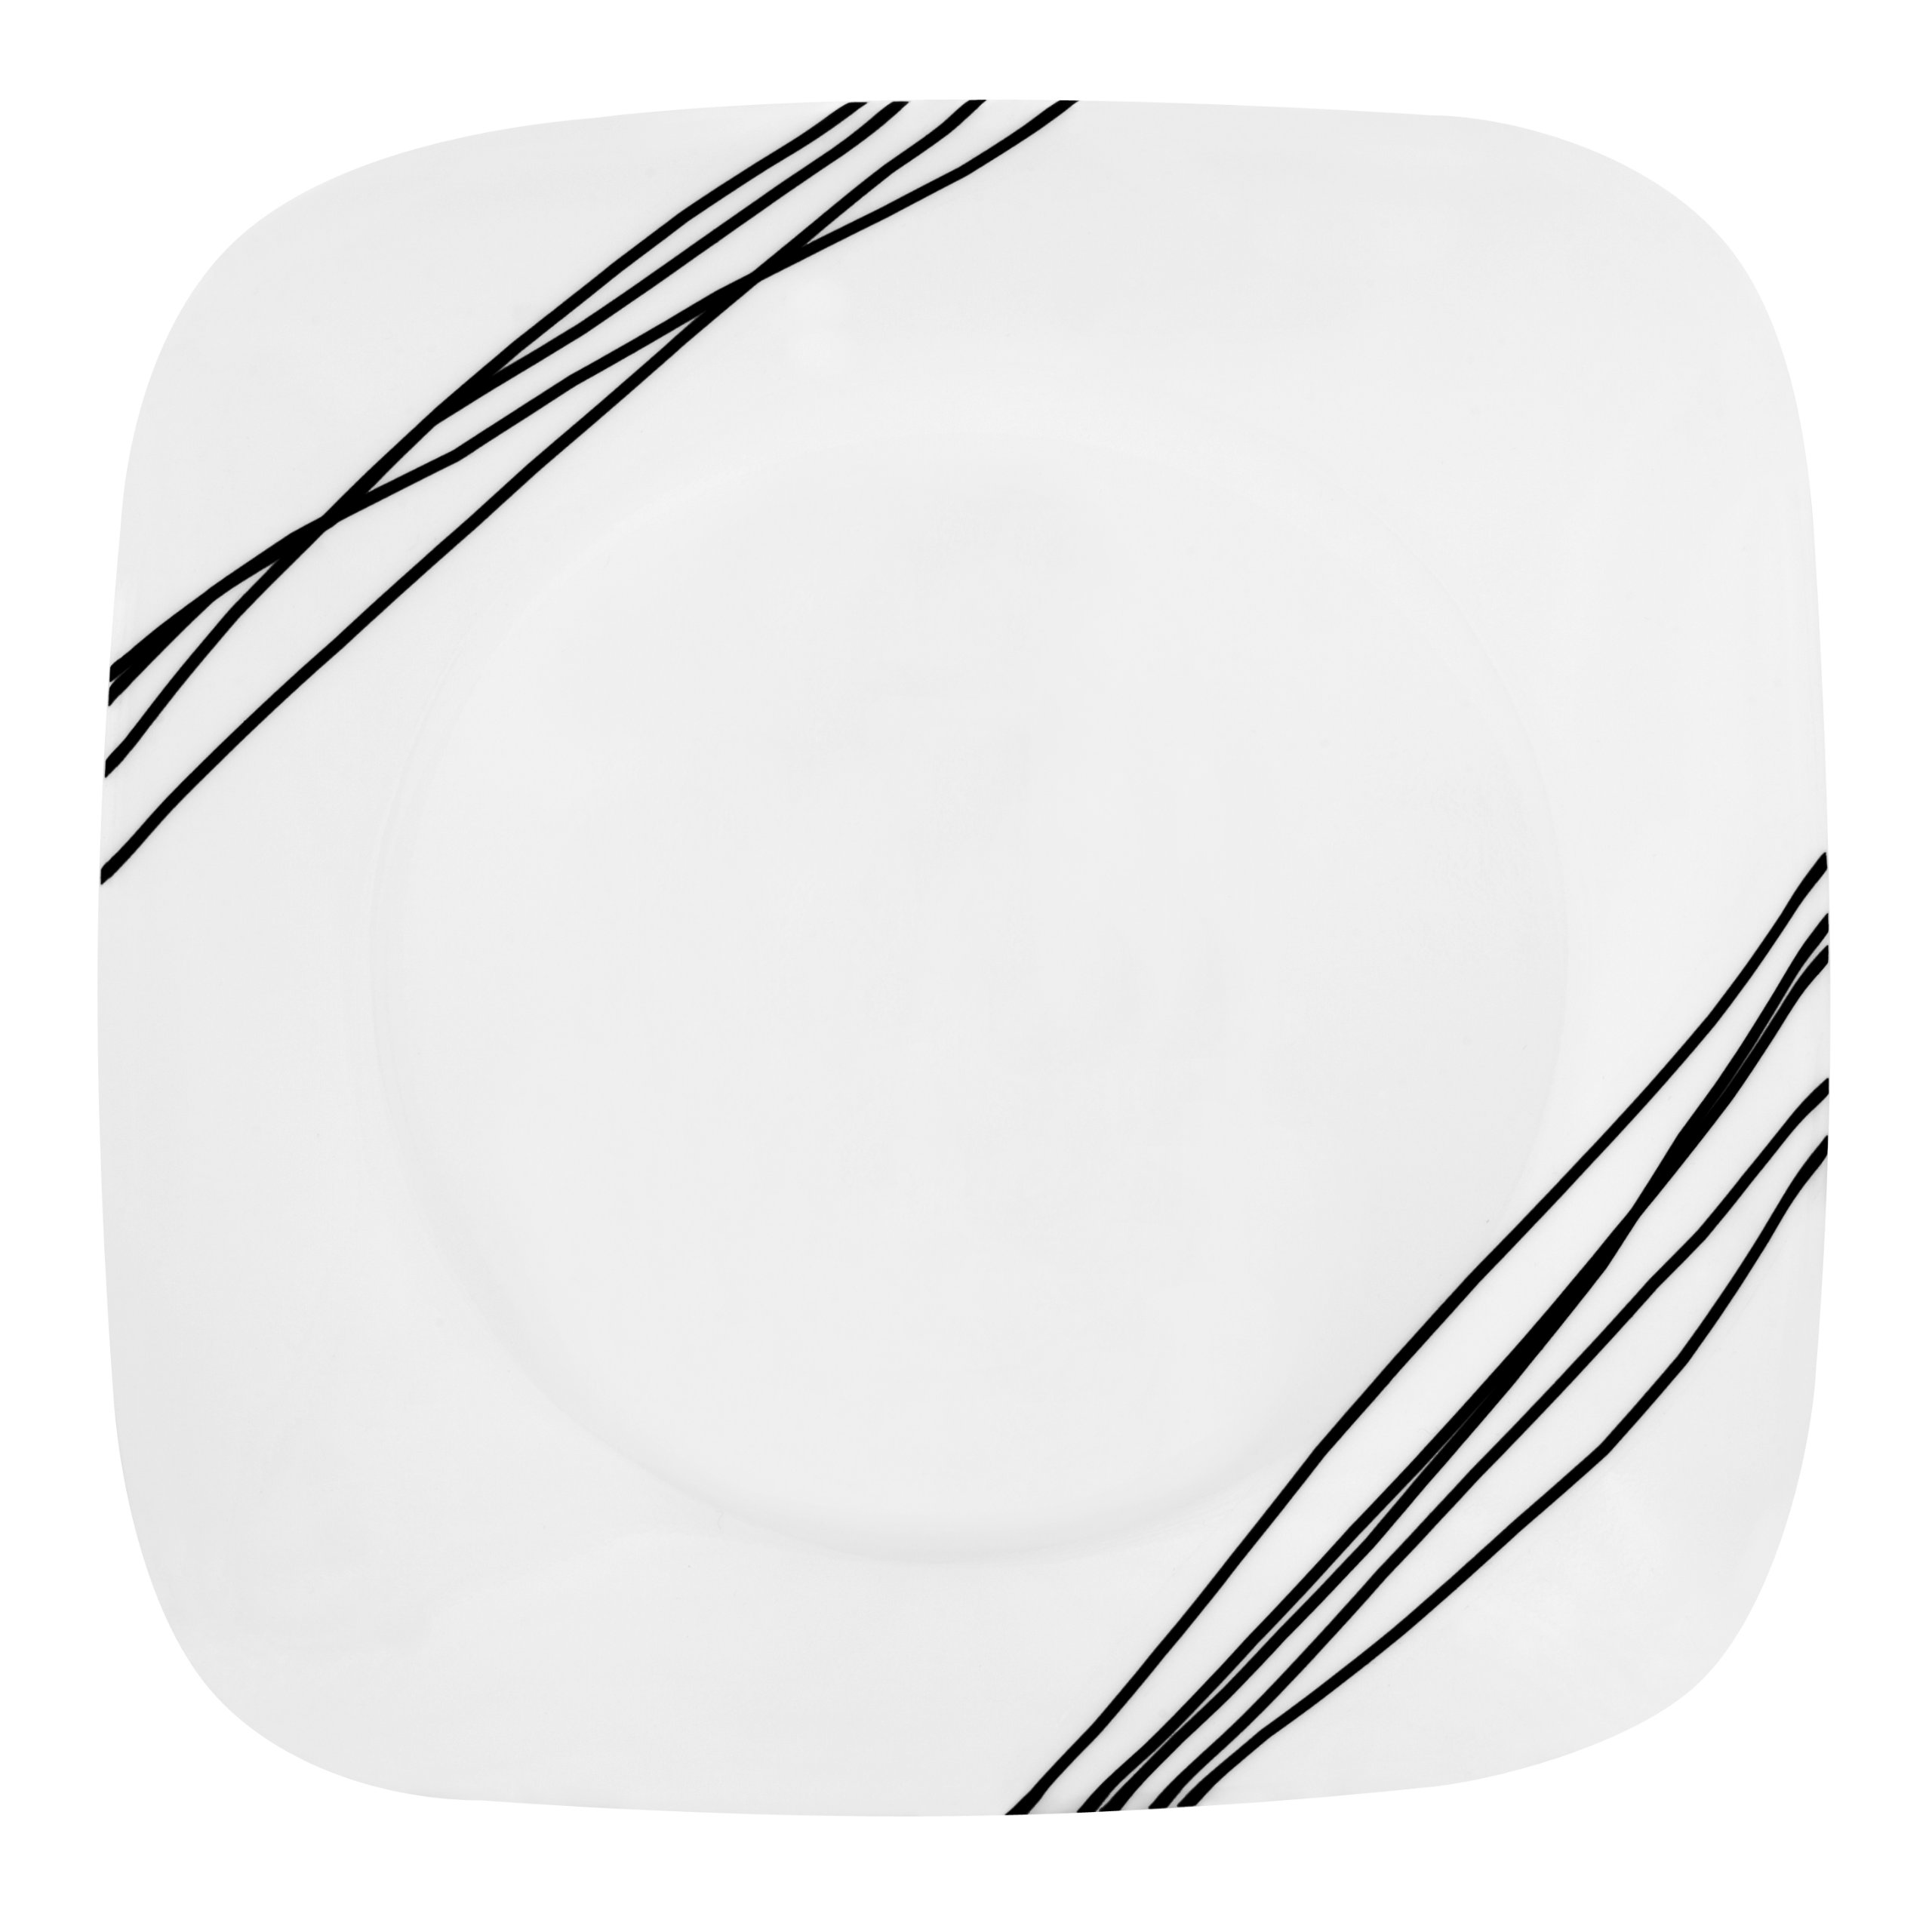 Corelle Simple Sketch Luncheon Plate, 8-3/4-Inch, Square